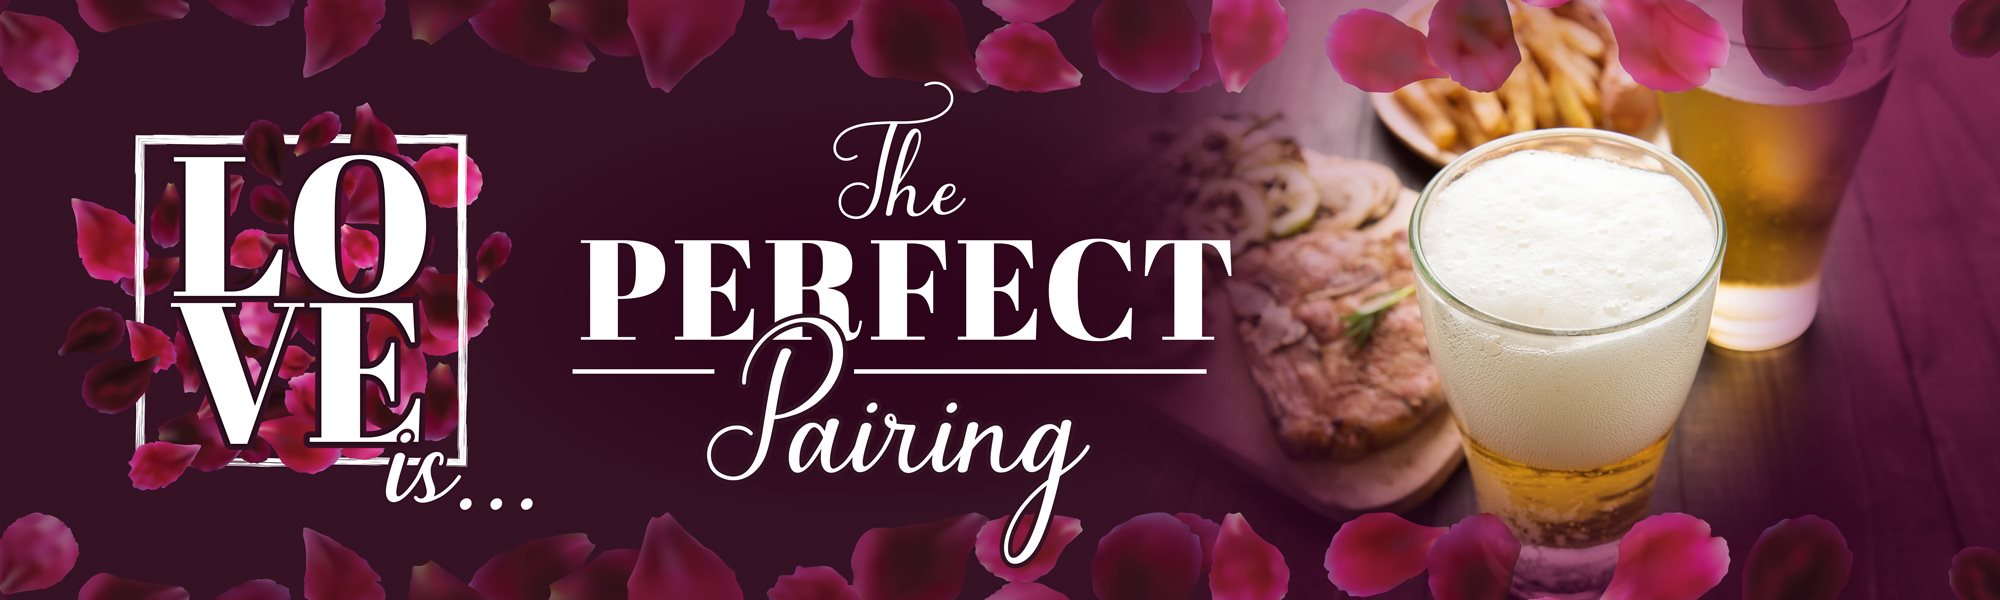 PerfectPairing-Slider-ENG-NEW